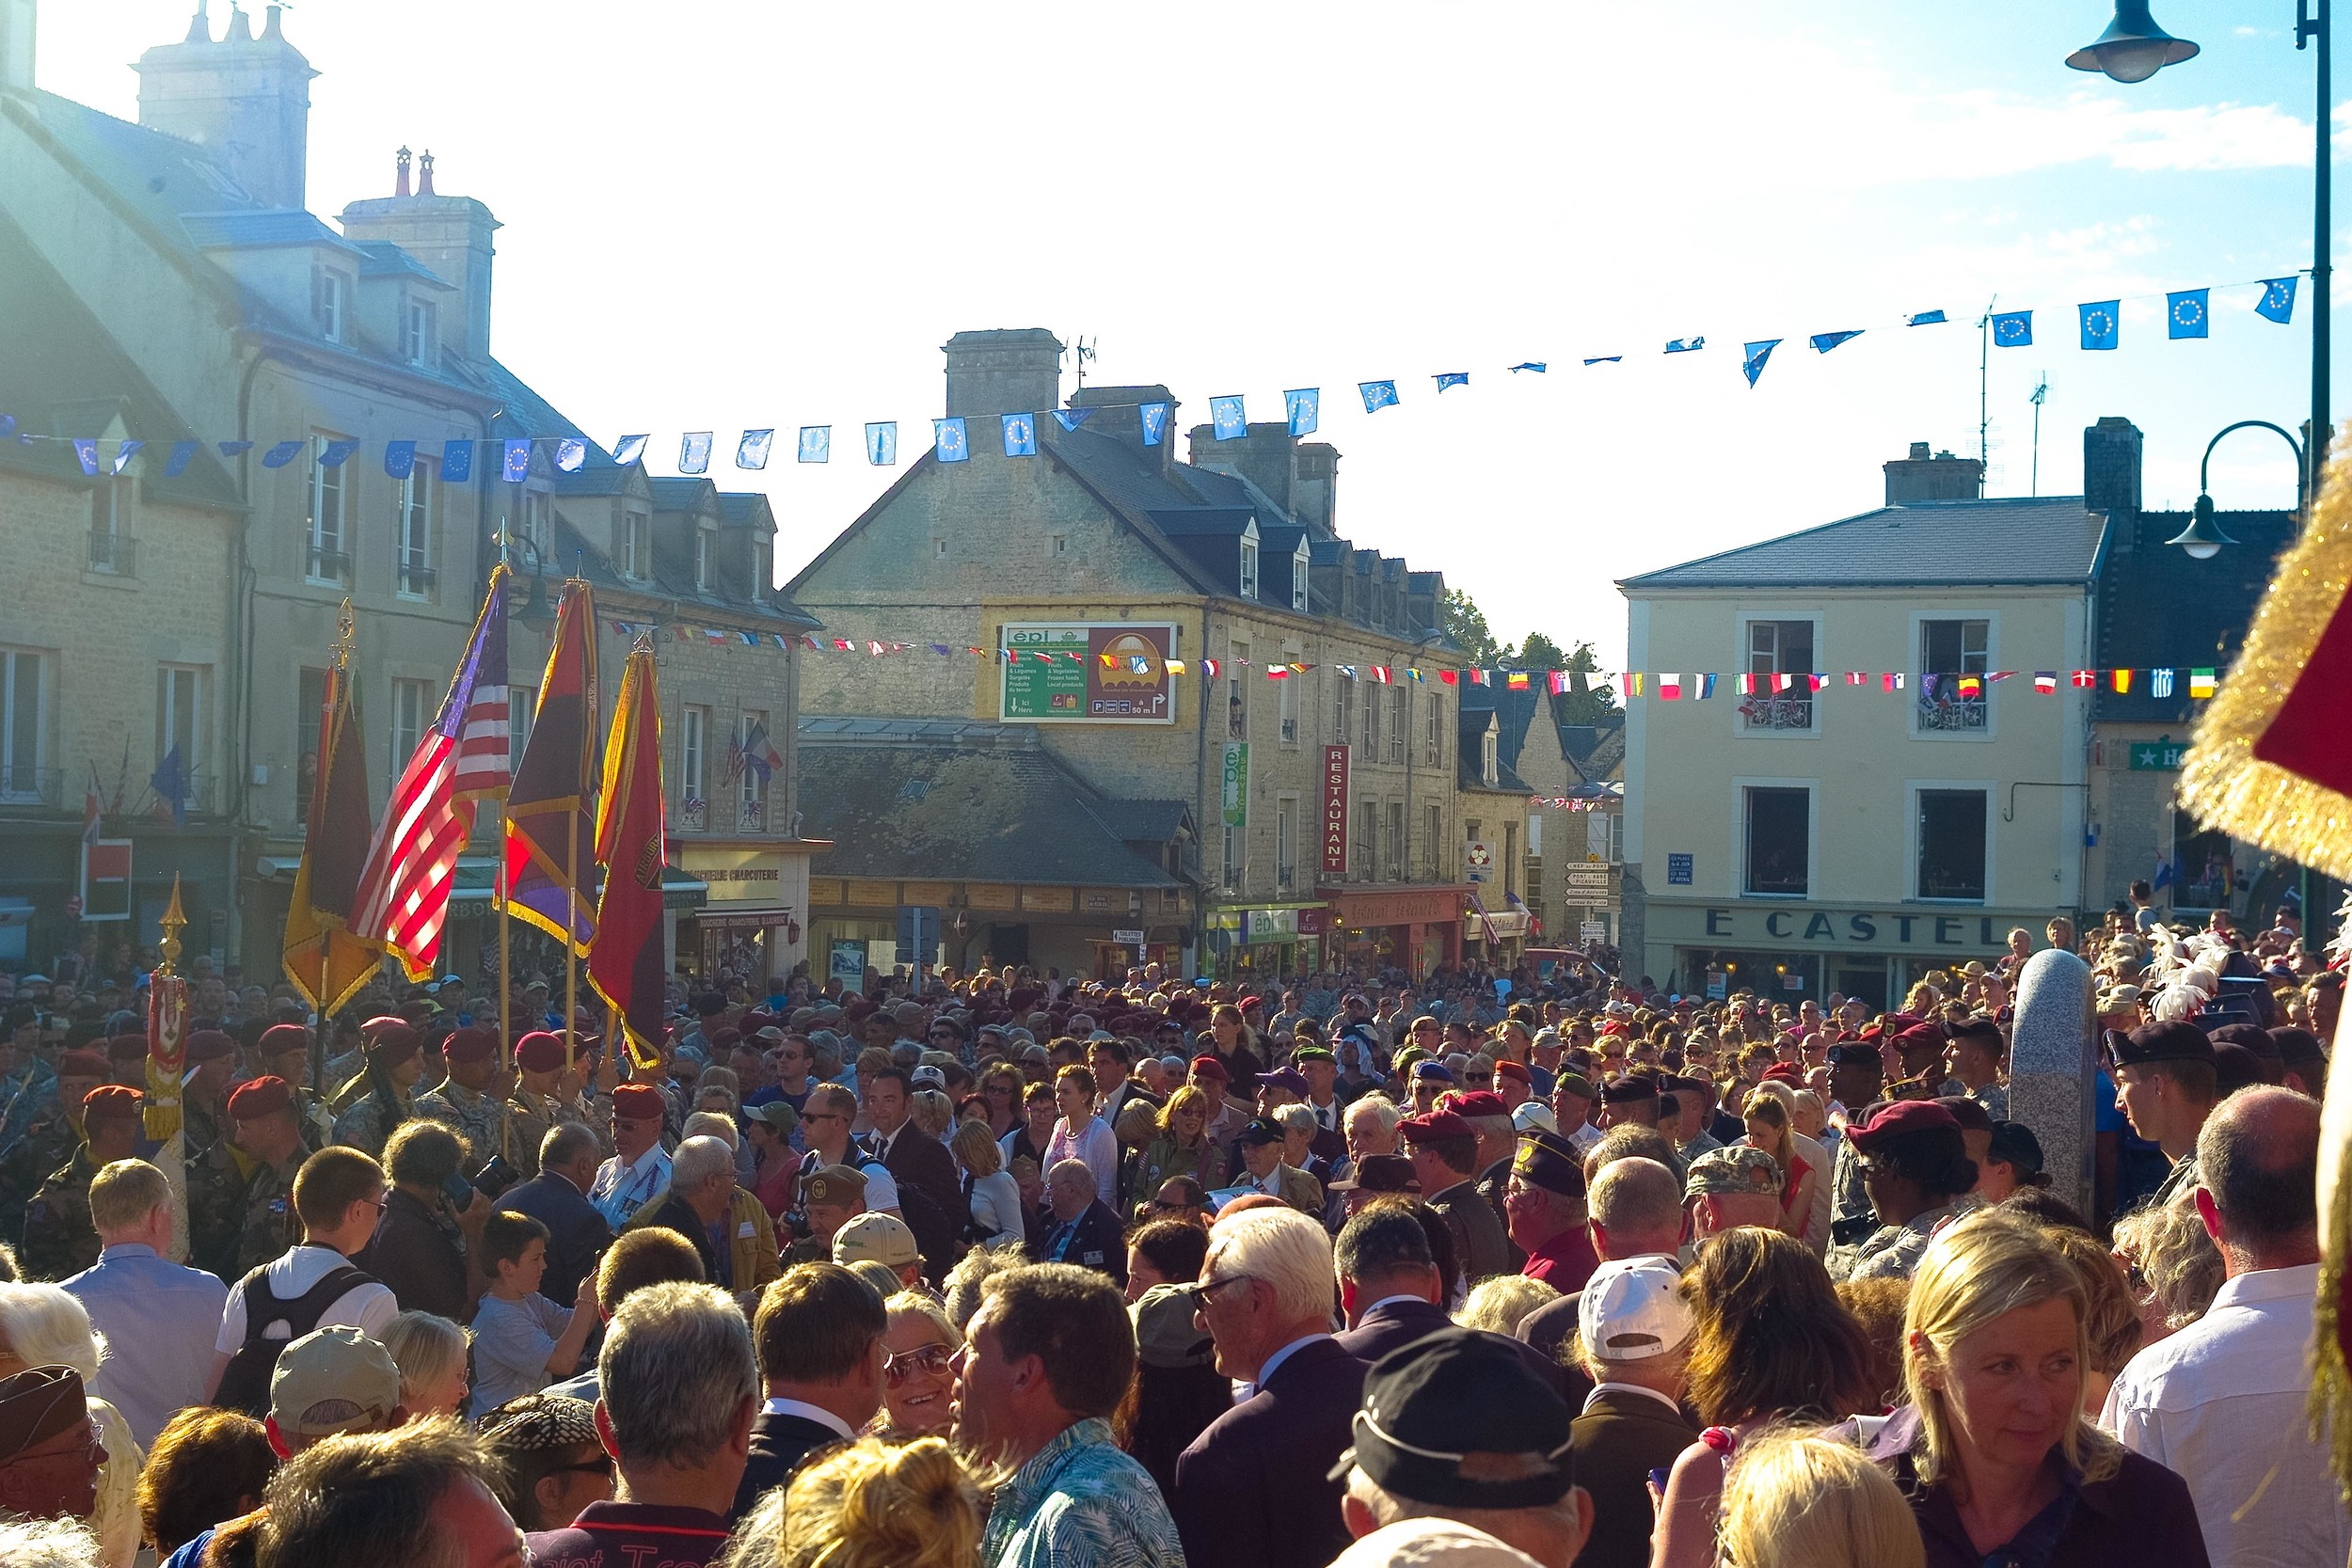 During the ceremony, the square was packed with thousands of people, all there to honor the Allied Paratroopers.